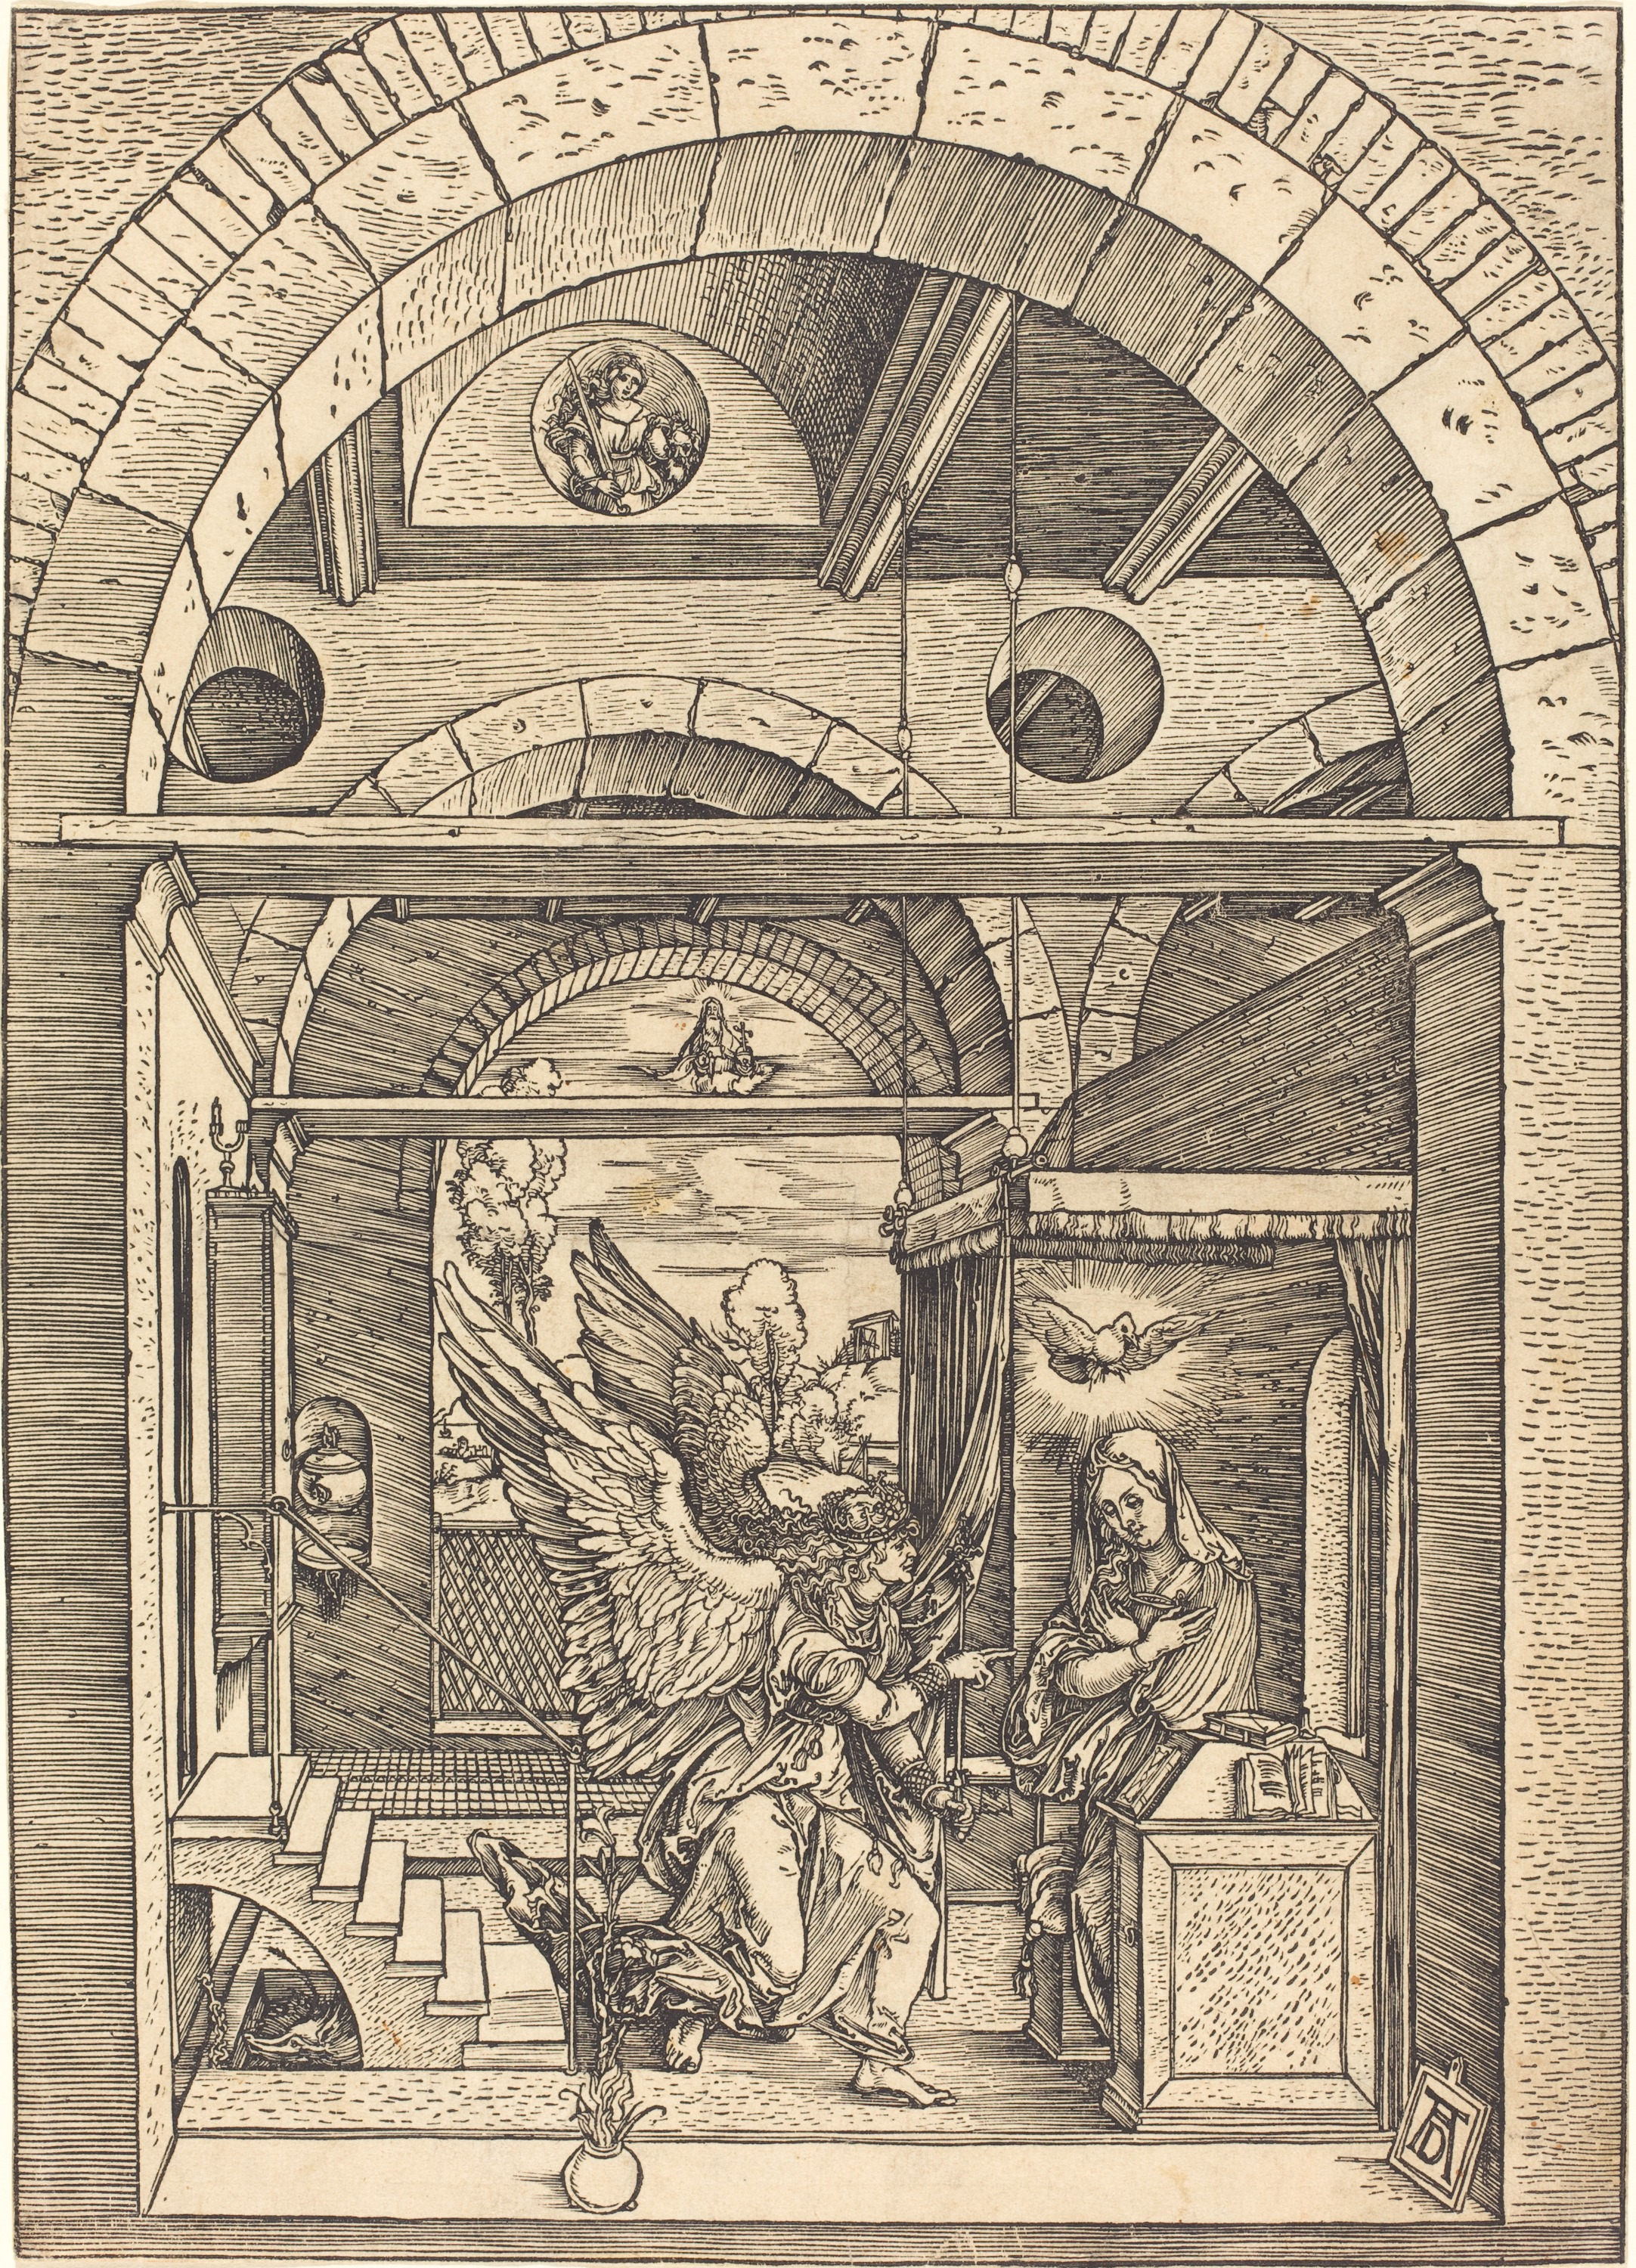 File:Albrecht Dürer - The Annunciation (NGA 1943.3.3581).jpg